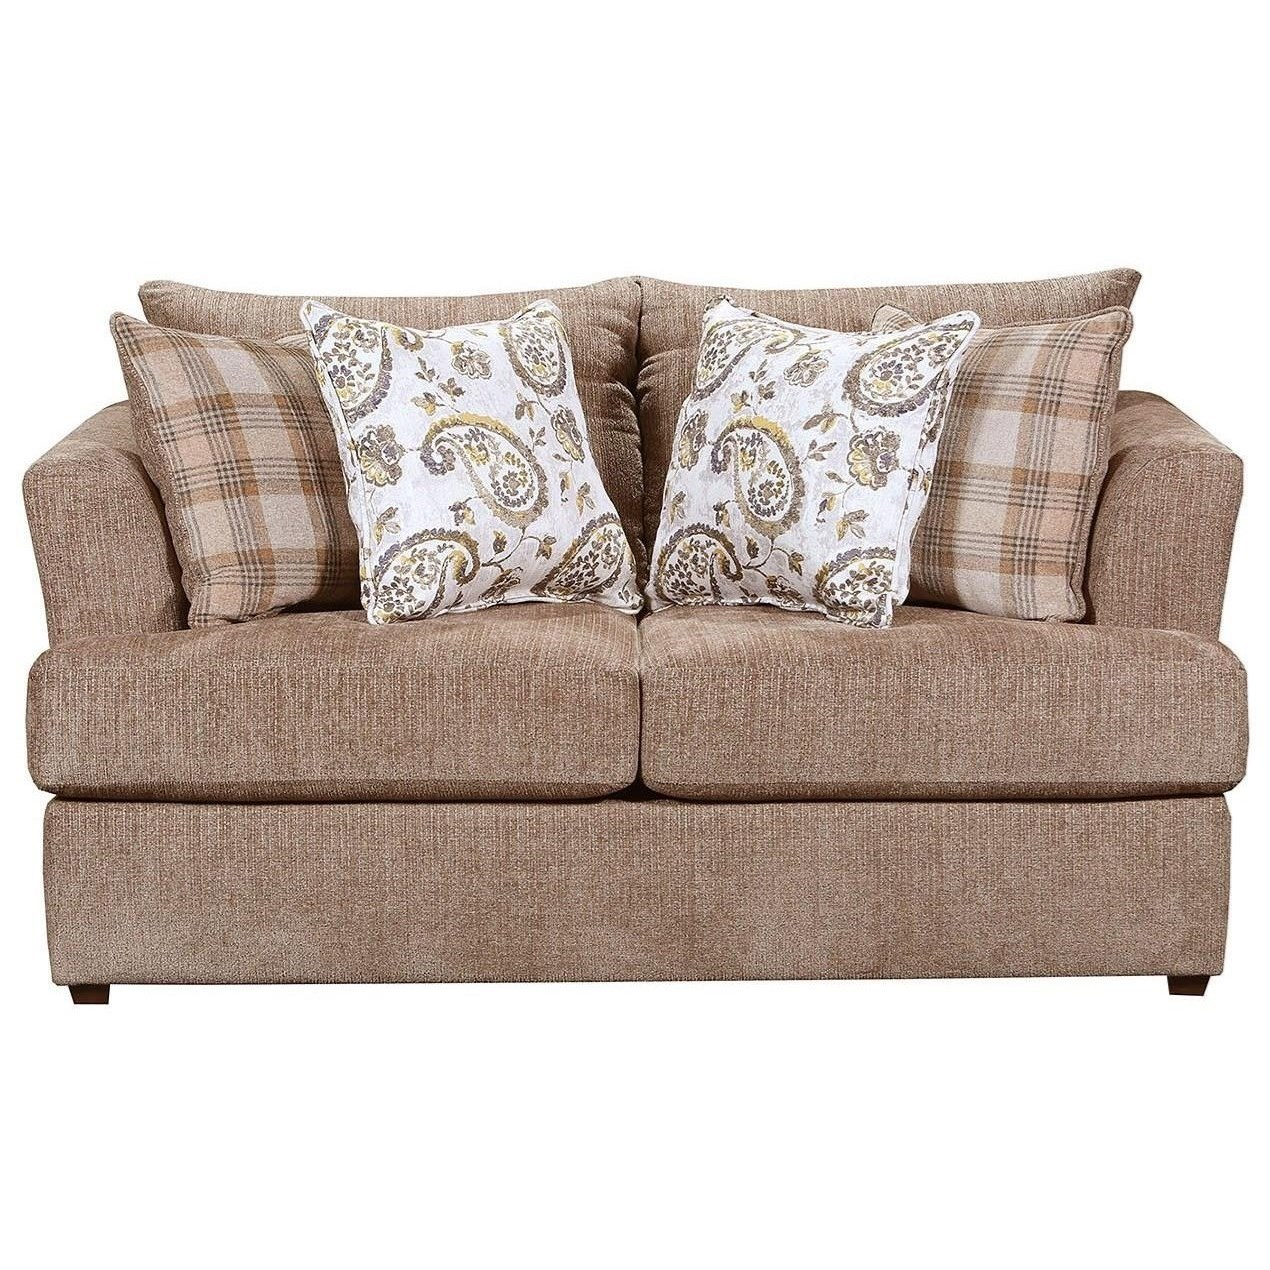 8009 Stationary Loveseat by Lane at Esprit Decor Home Furnishings